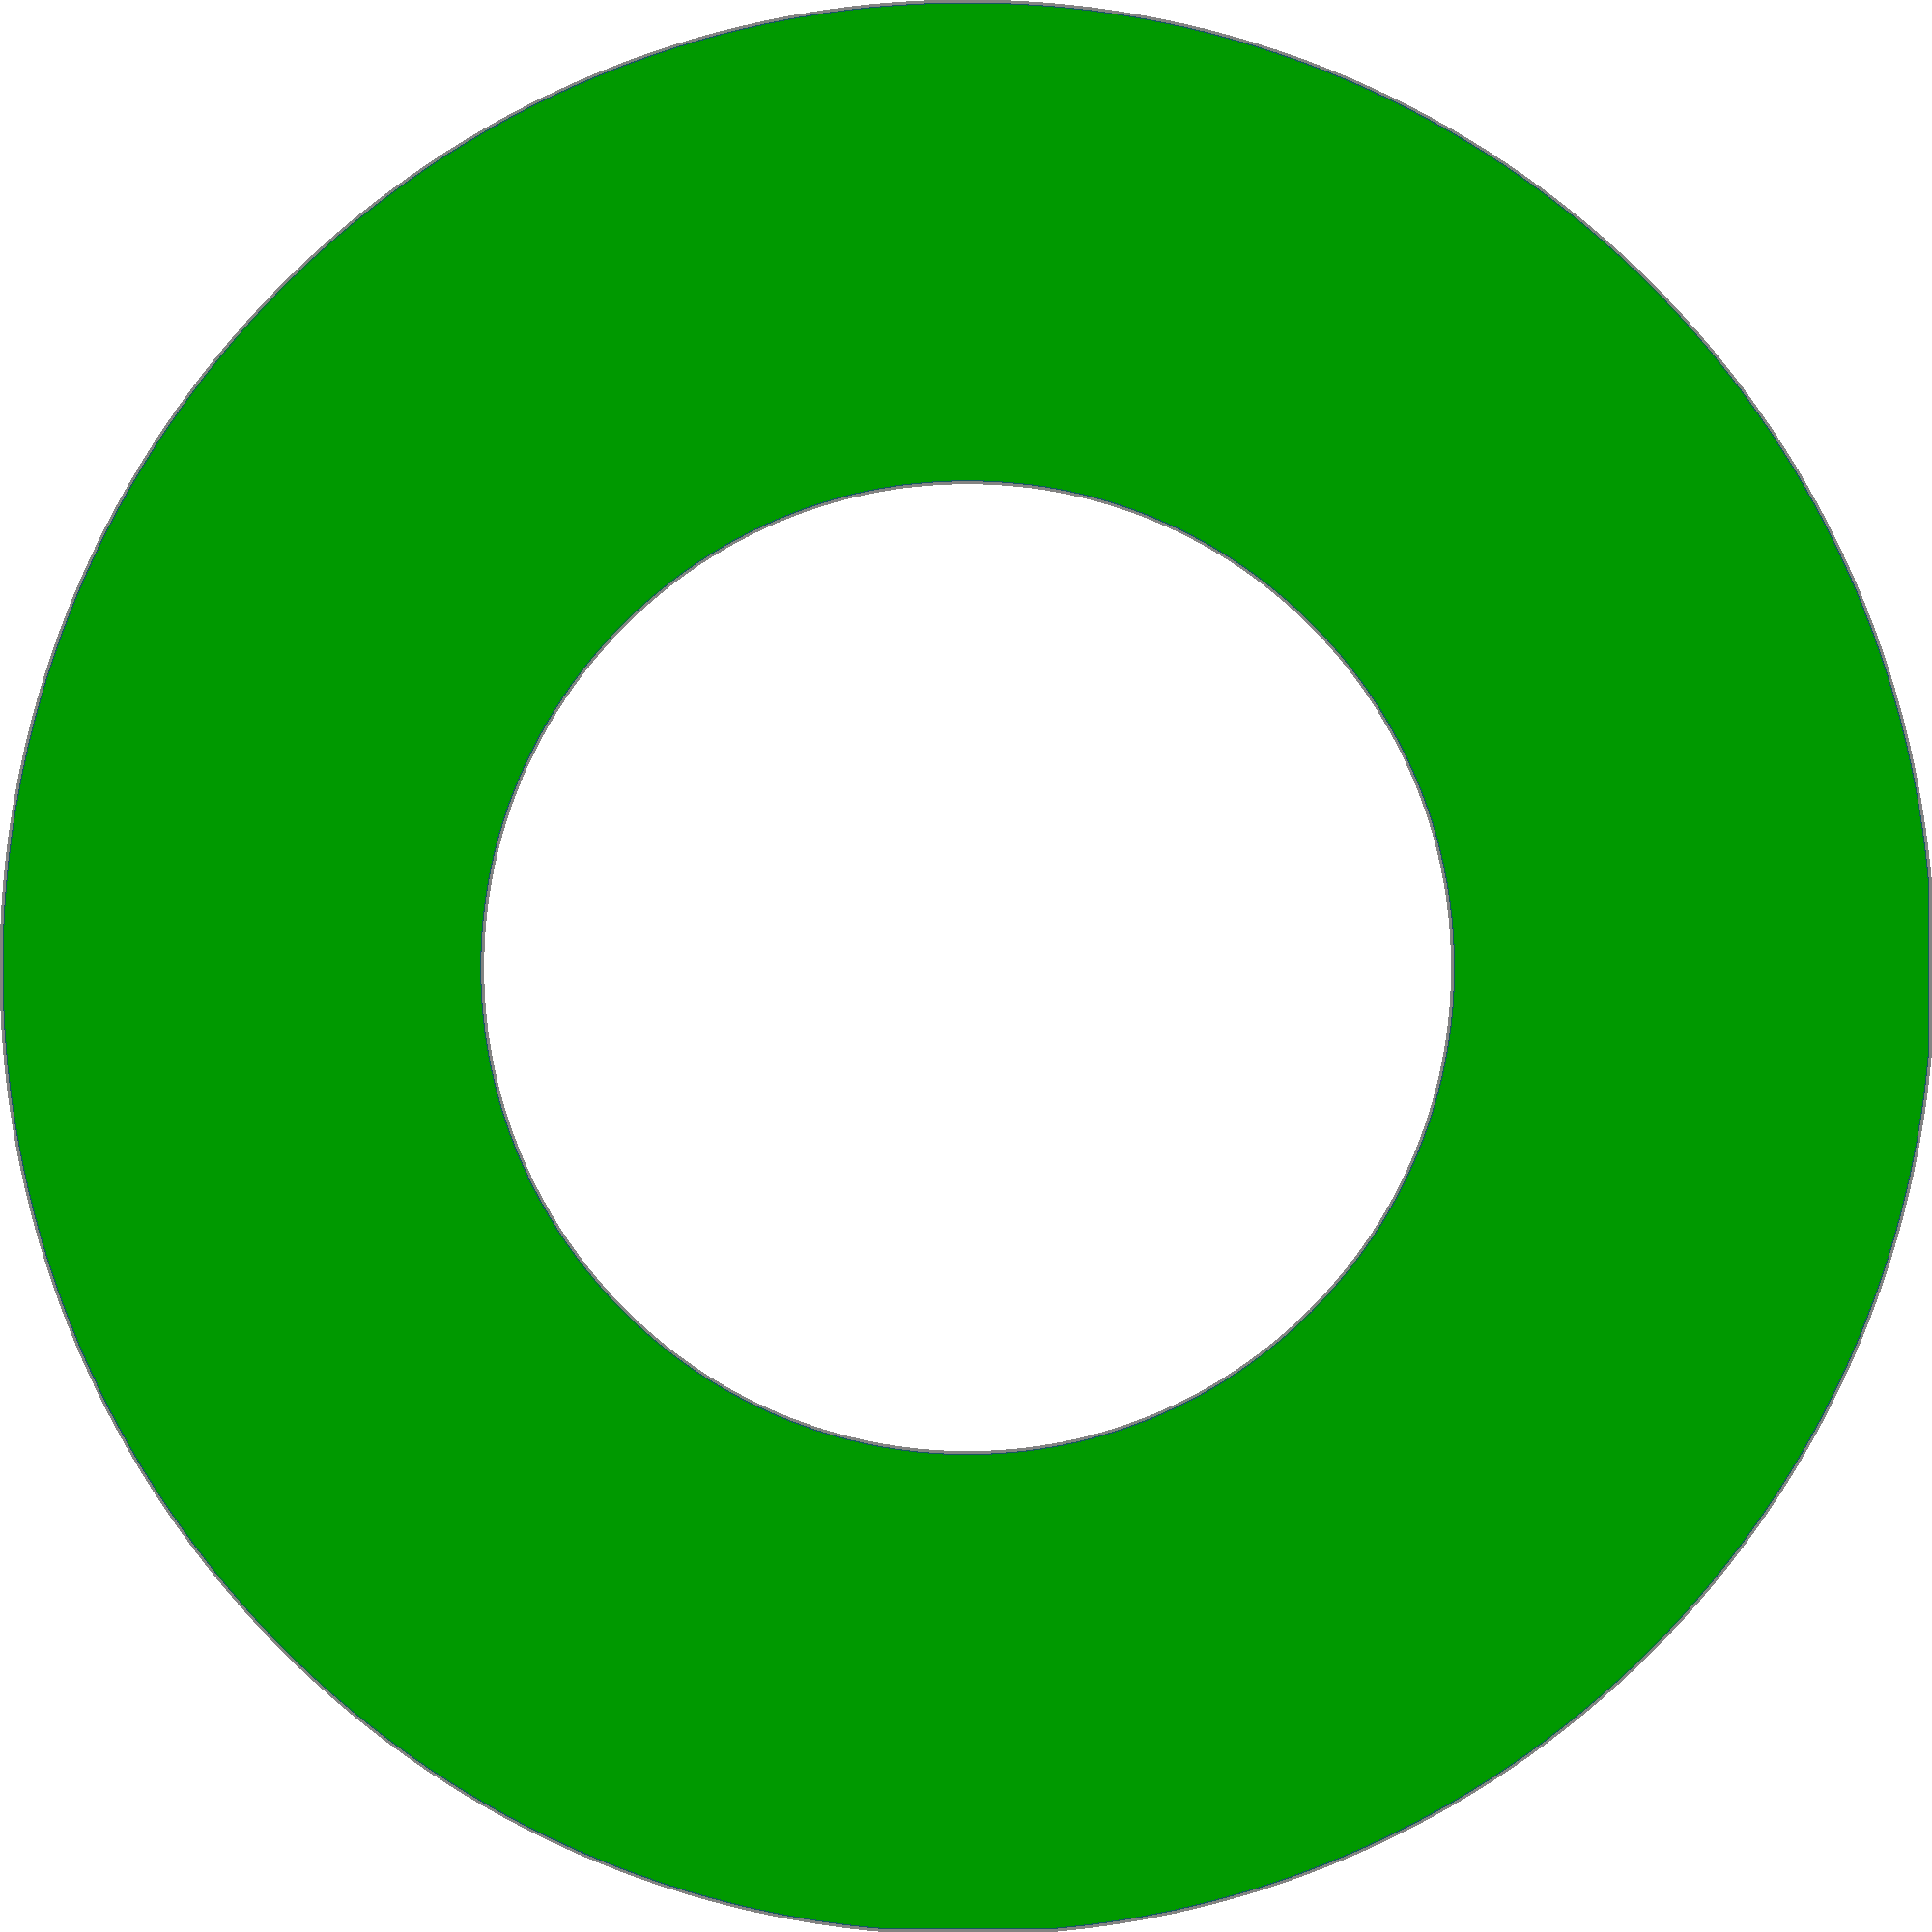 Green circle png #44857 - Free Icons and PNG Backgrounds